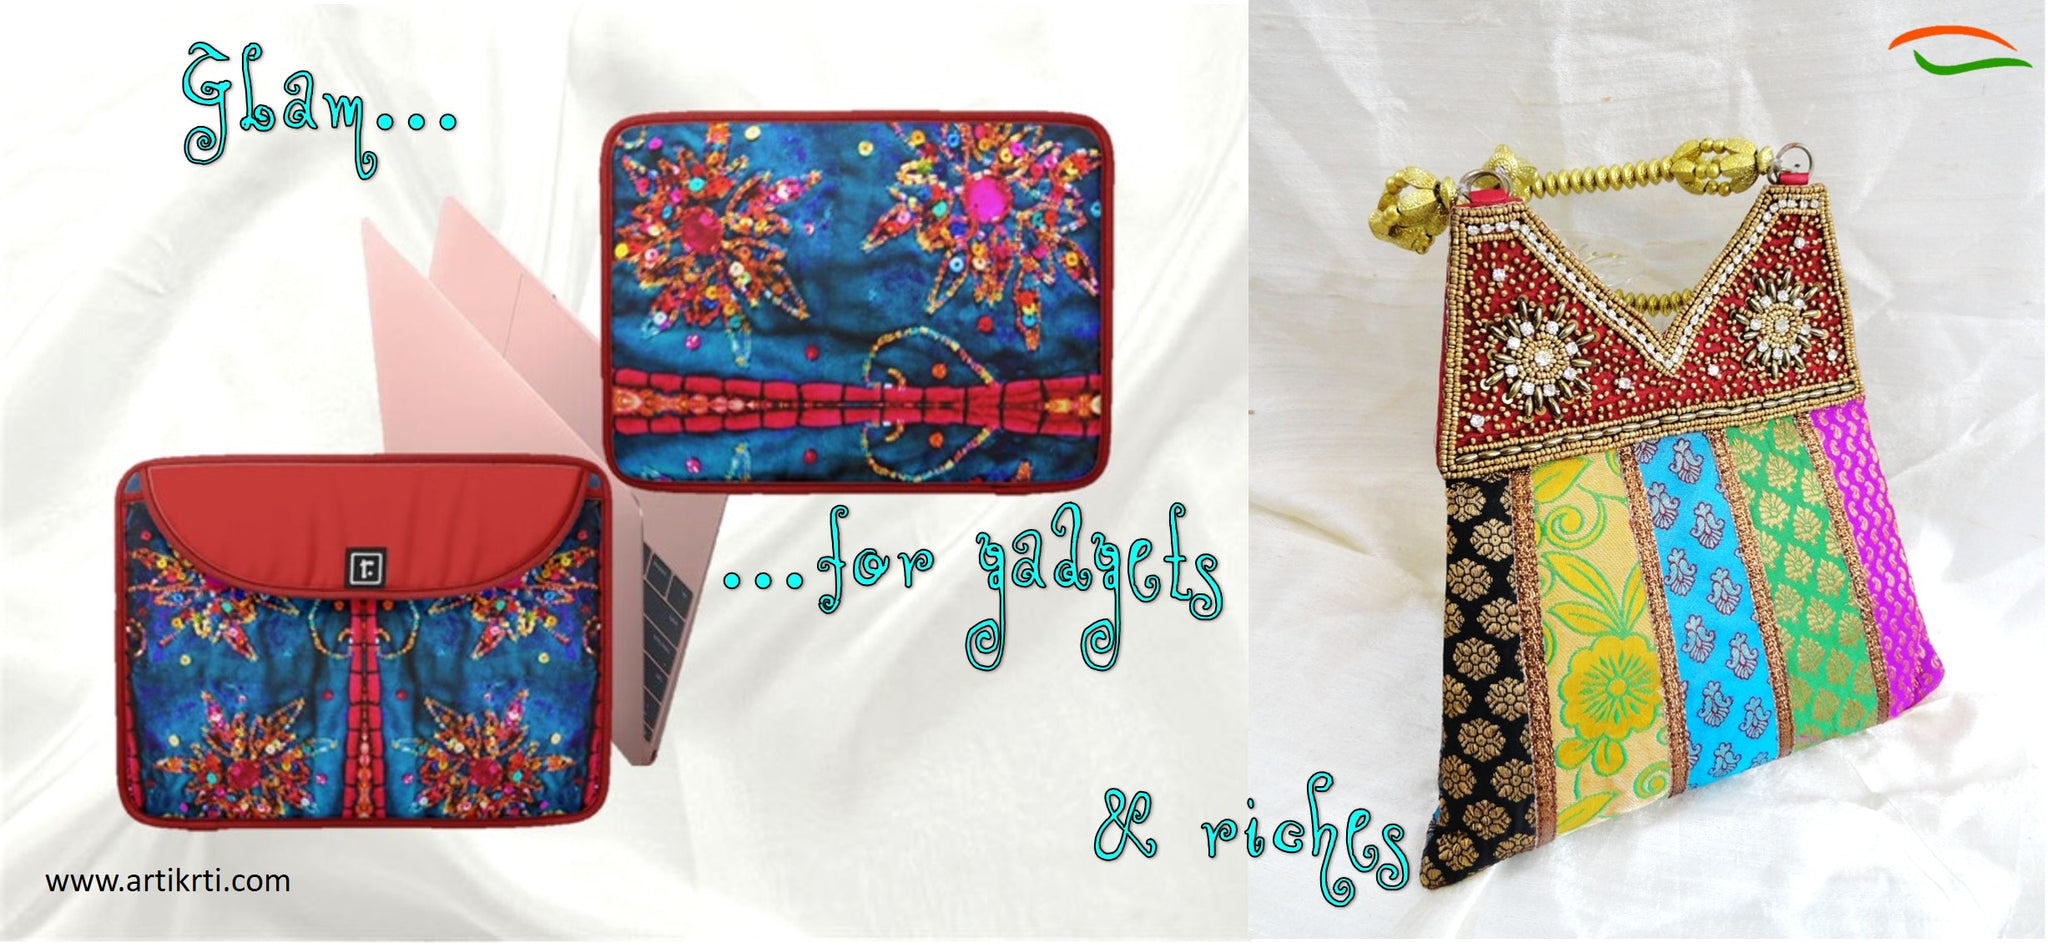 bollywood-style-indian-ethnic-designs-laptop-bag-wrist-bags-clutches-handbags-artikrti